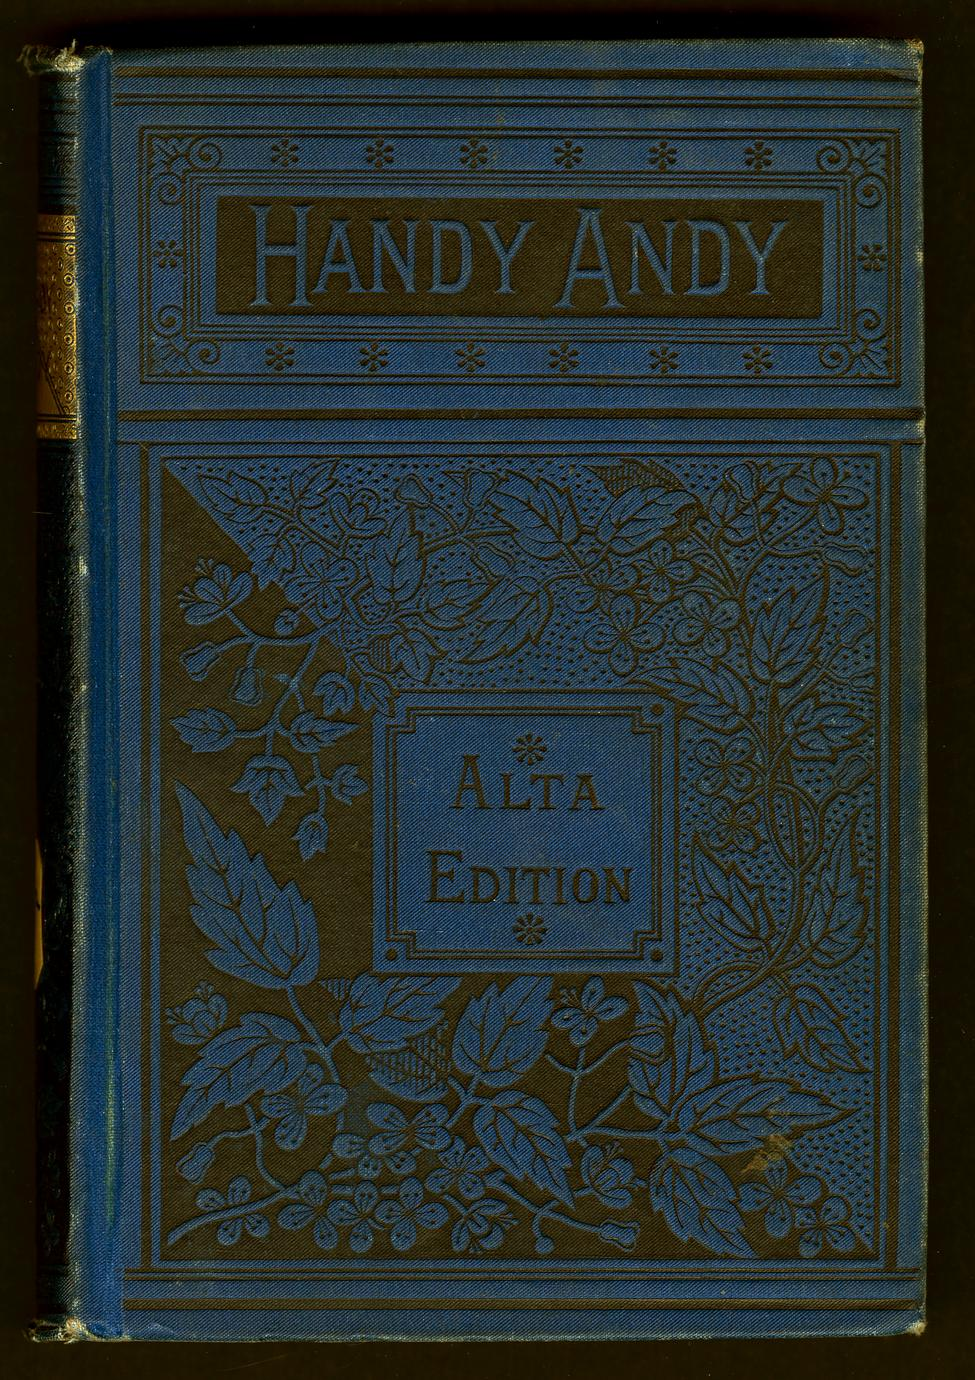 Handy Andy : a tale of Irish life (1 of 2)